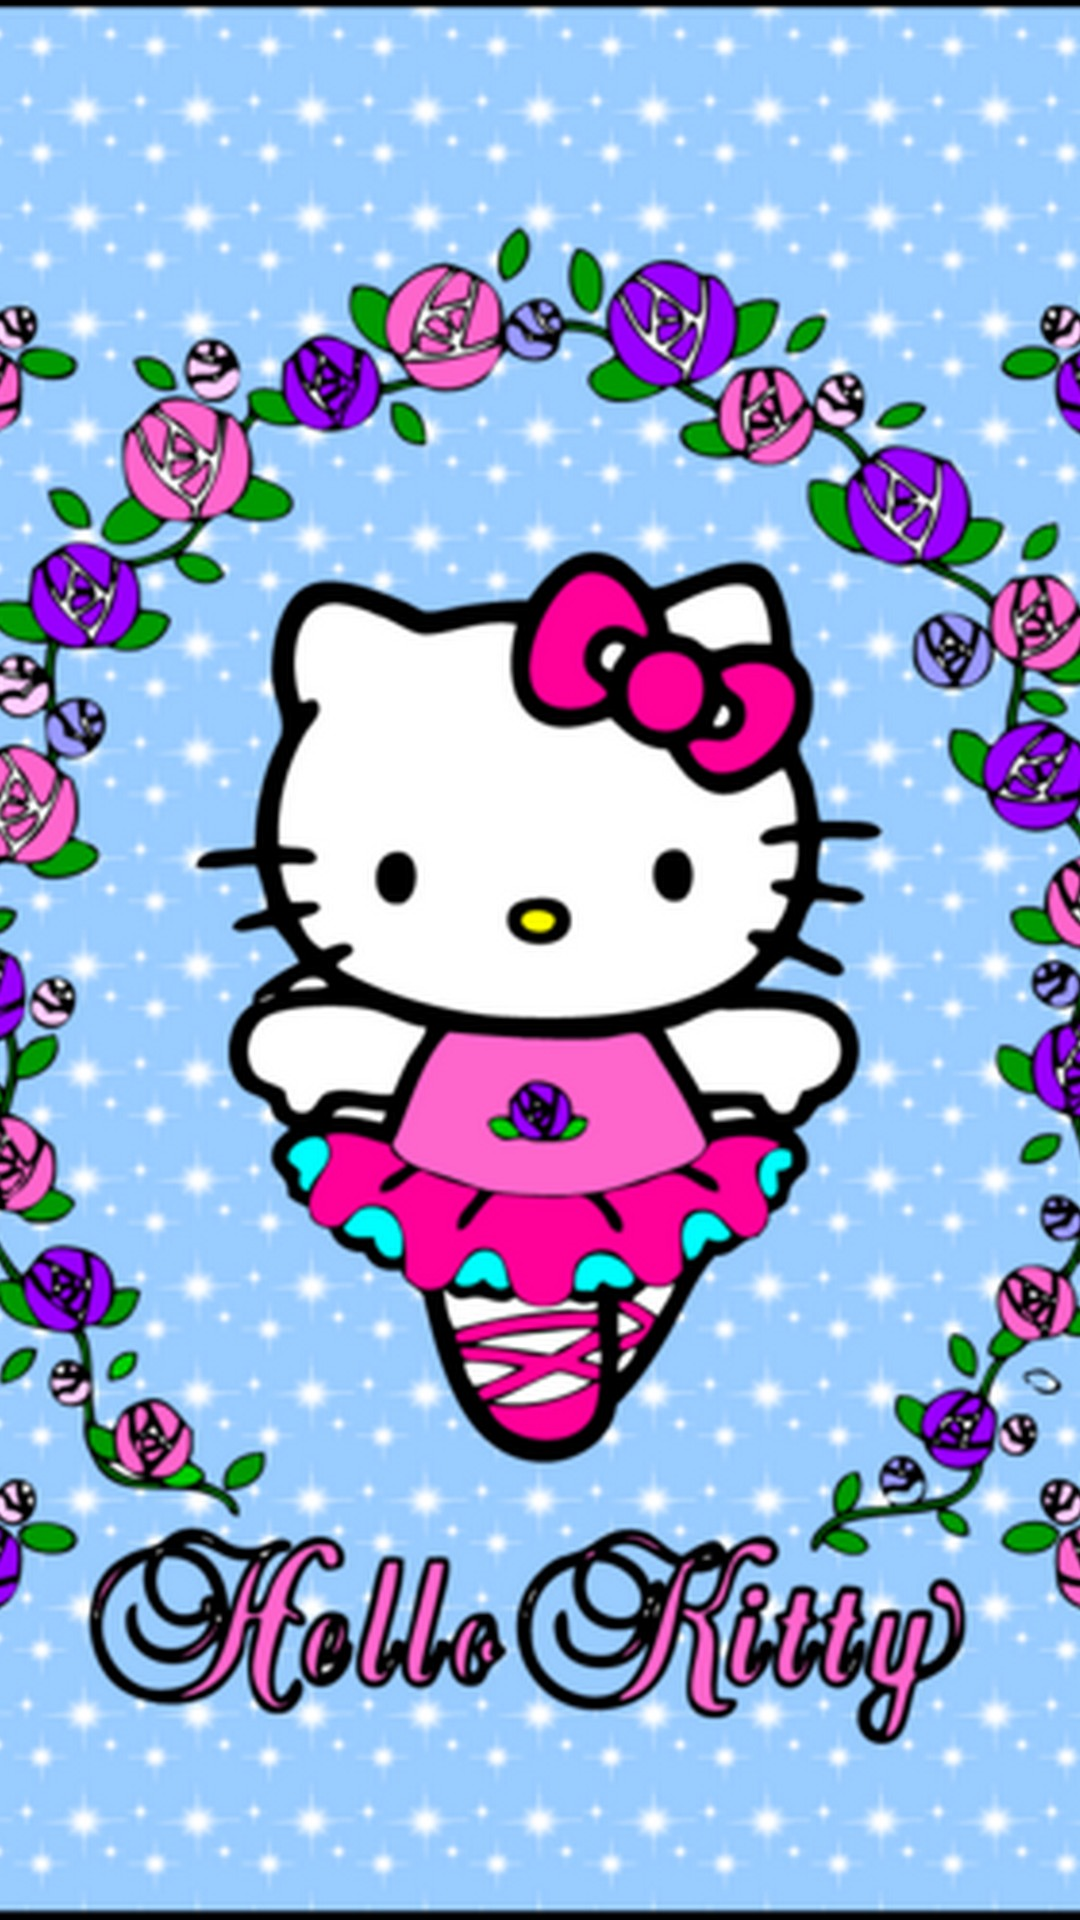 50 ] Hellokitty Wallpapers On WallpaperSafari